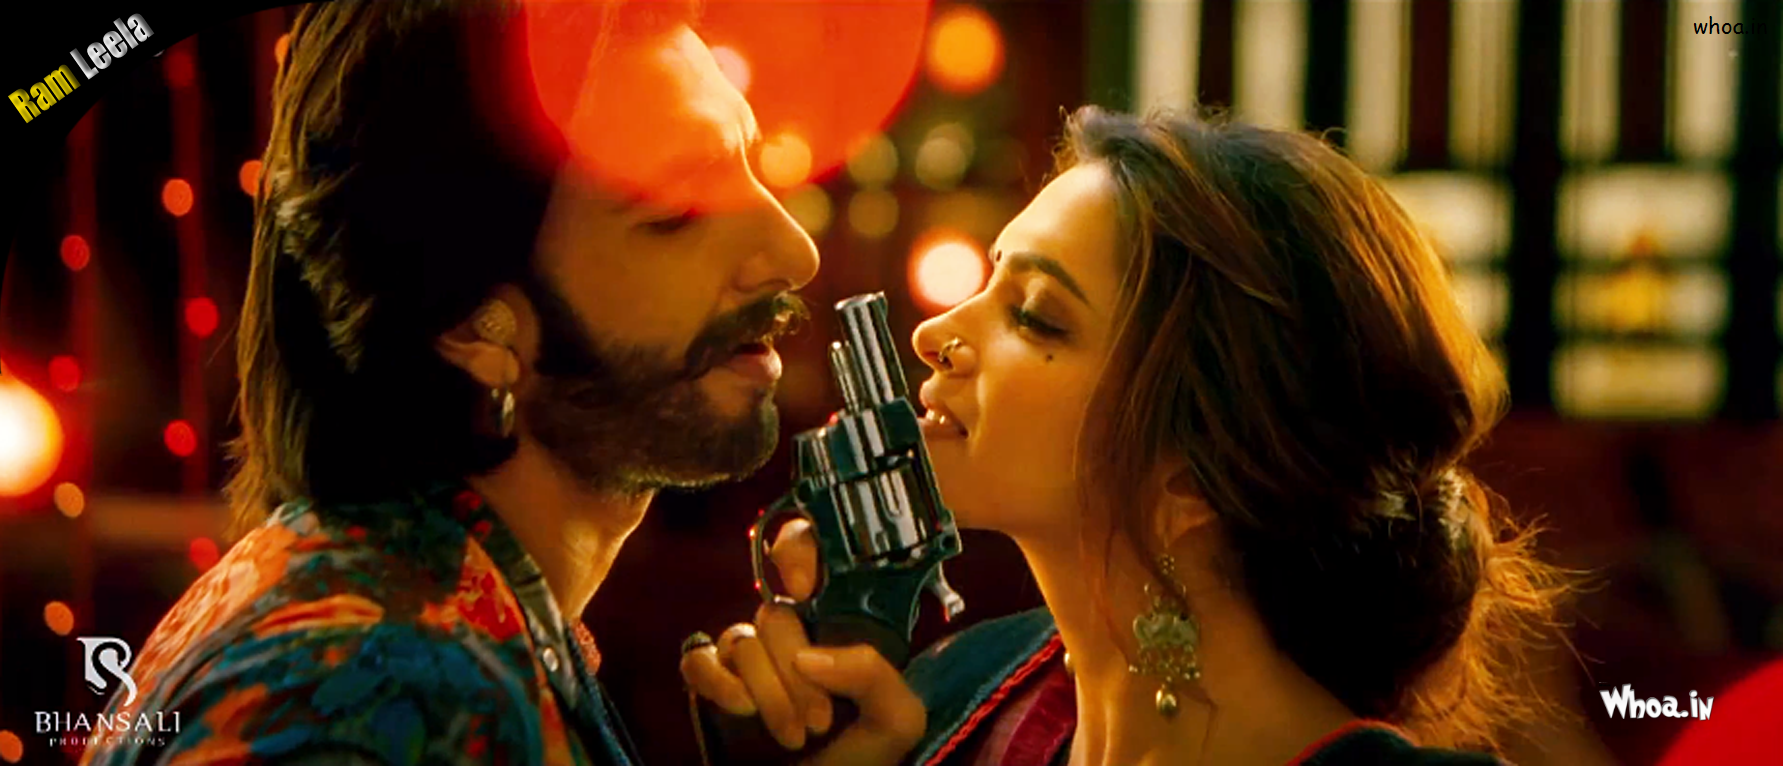 deepika padukone with gun in ram leela movie